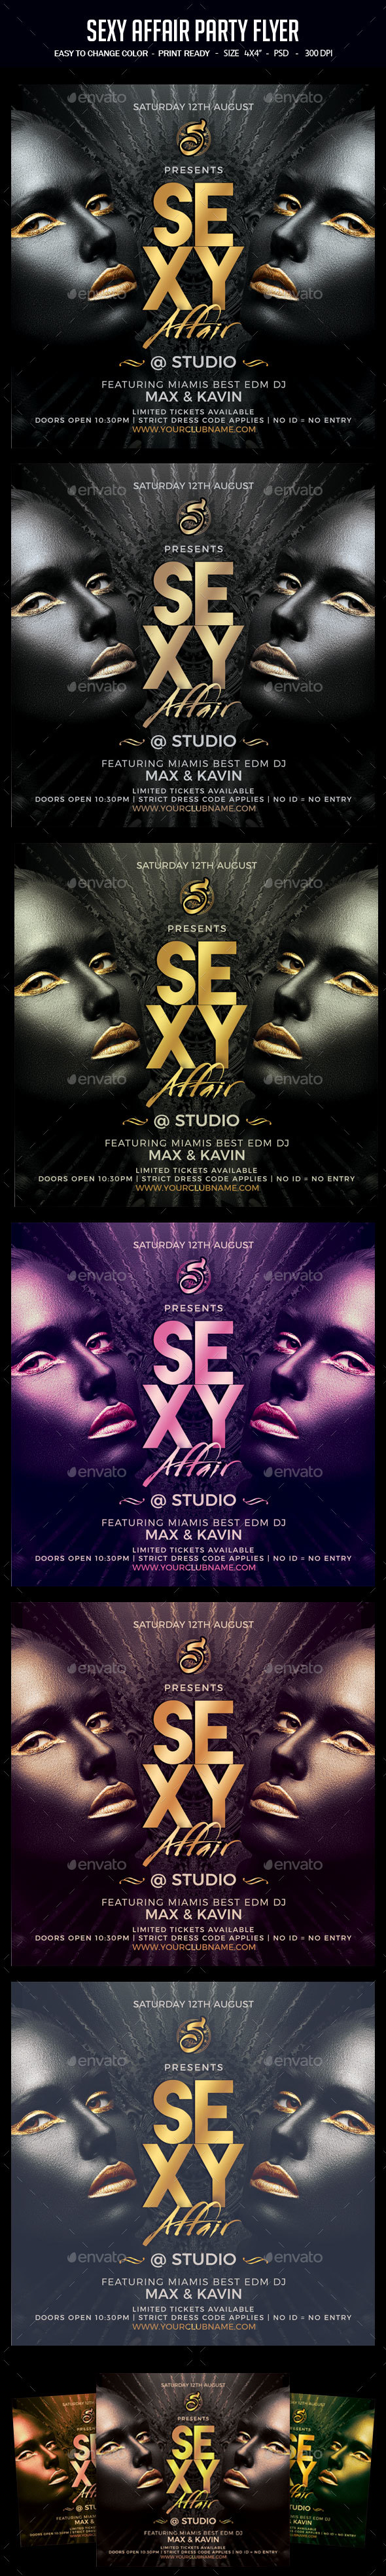 Sexy Affair Party Flyer - Clubs & Parties Events